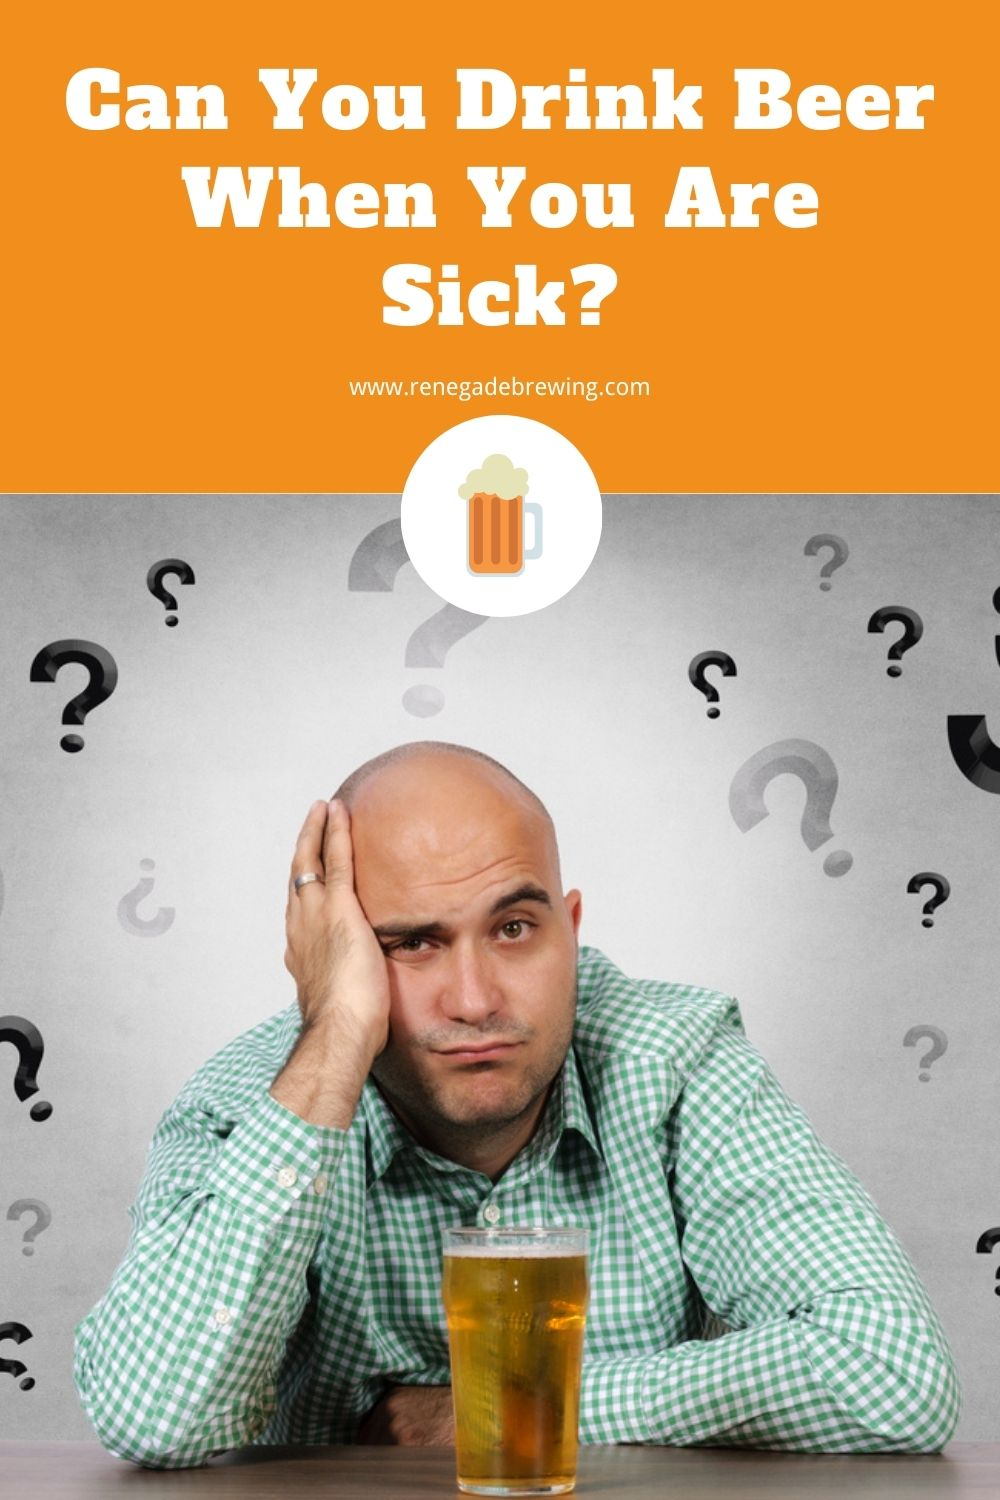 Can You Drink Beer When You Are Sick 1